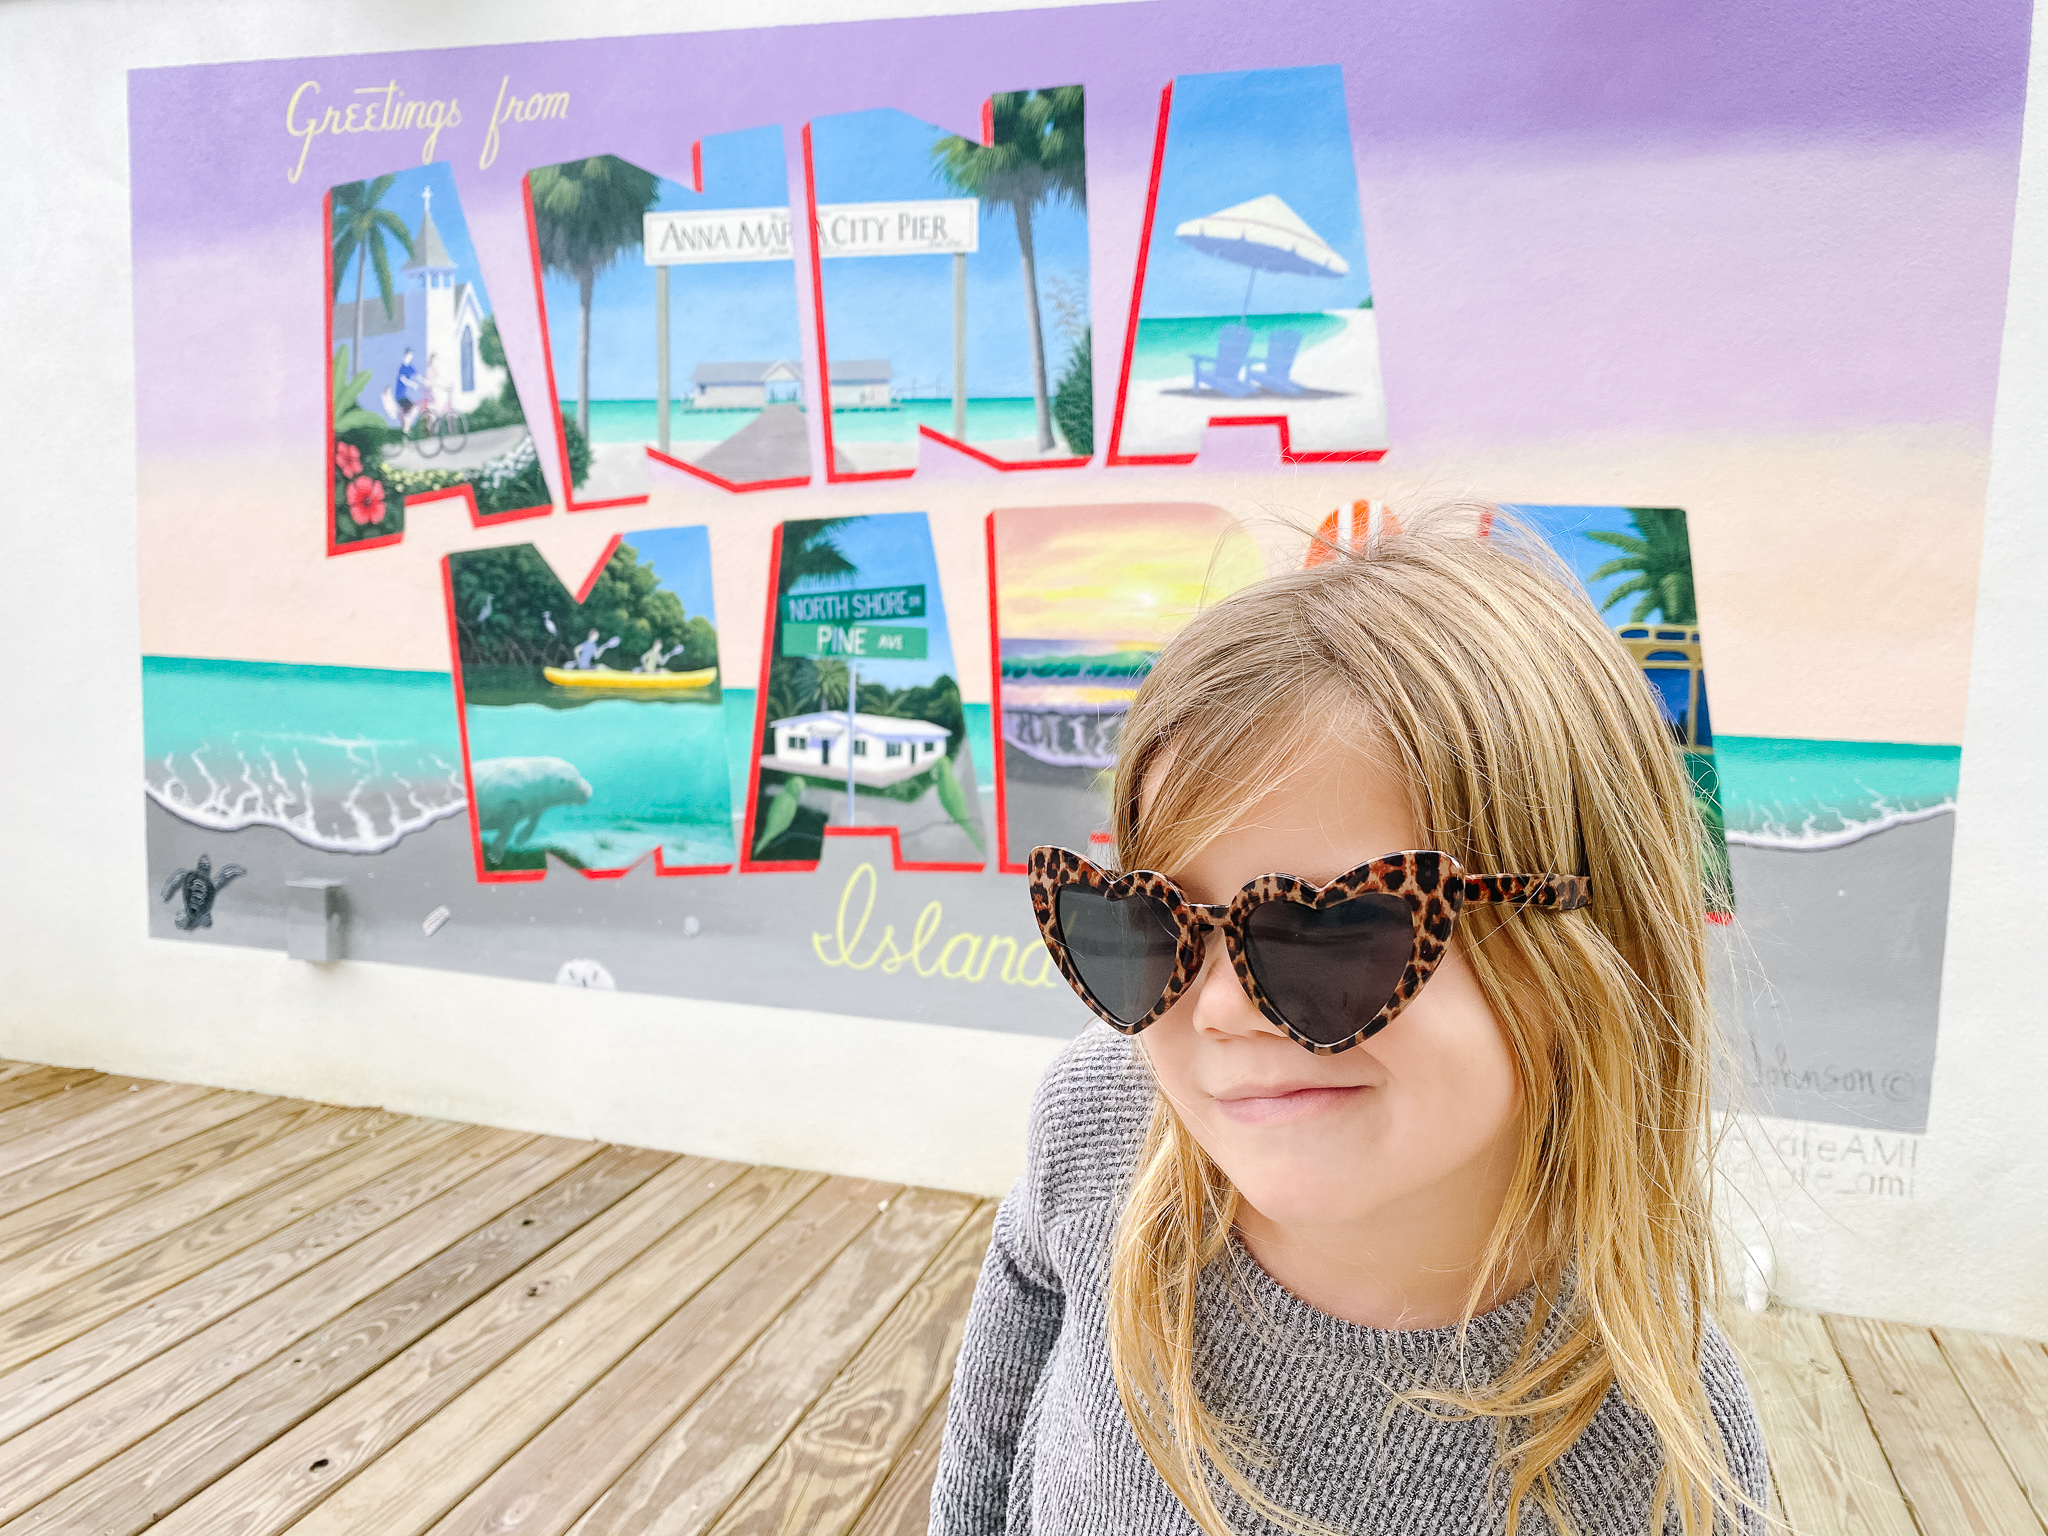 Anna Maria Island Travel Guide